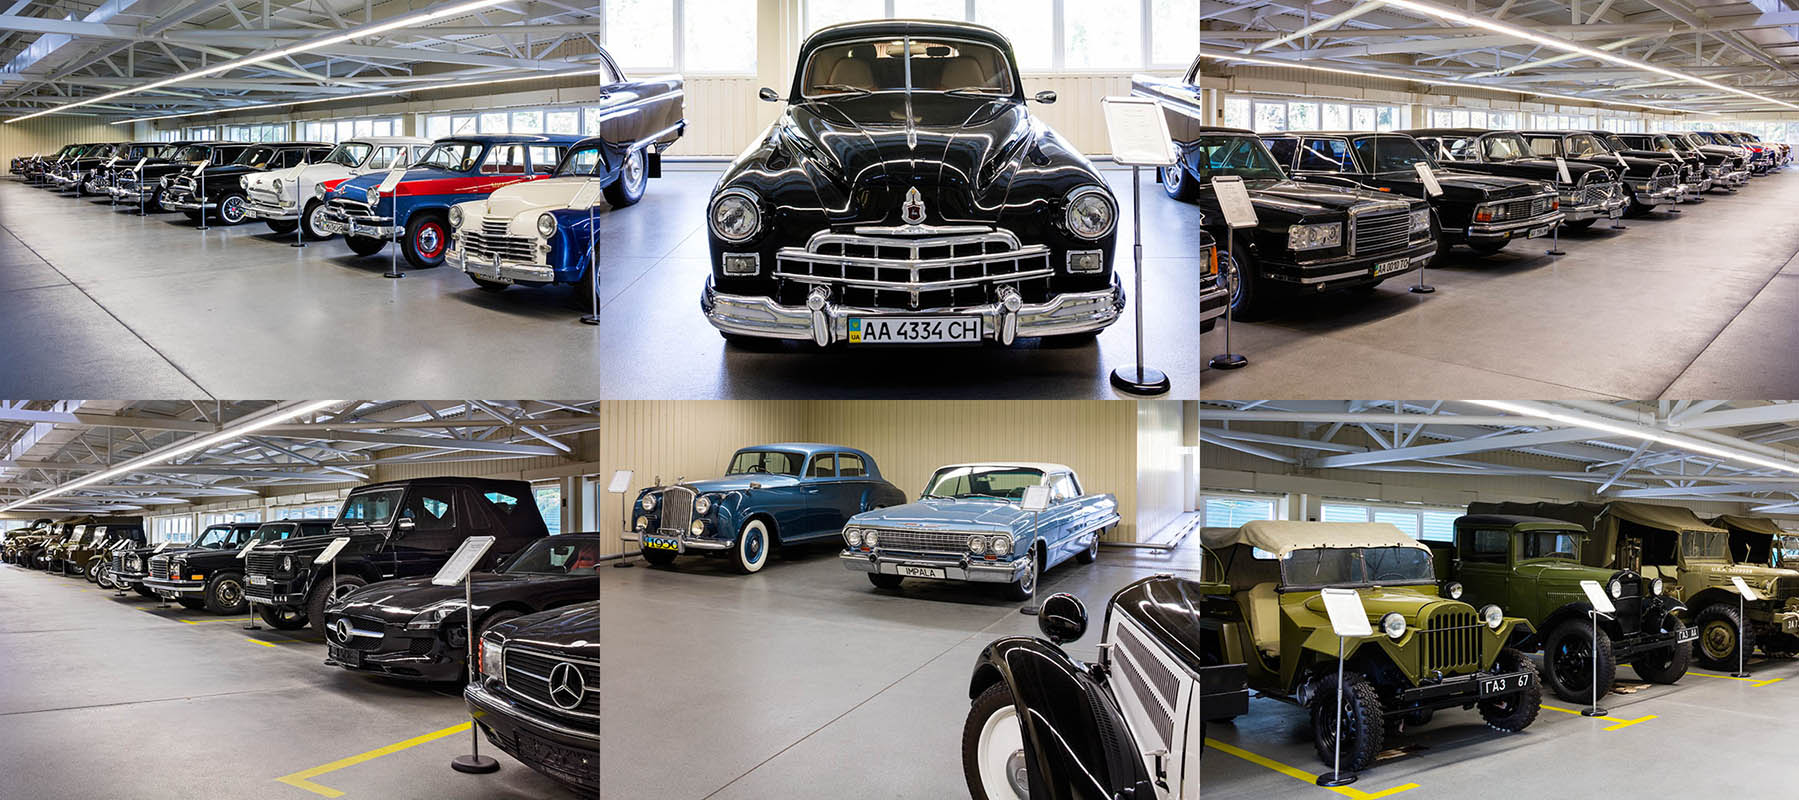 Some of the private car collection